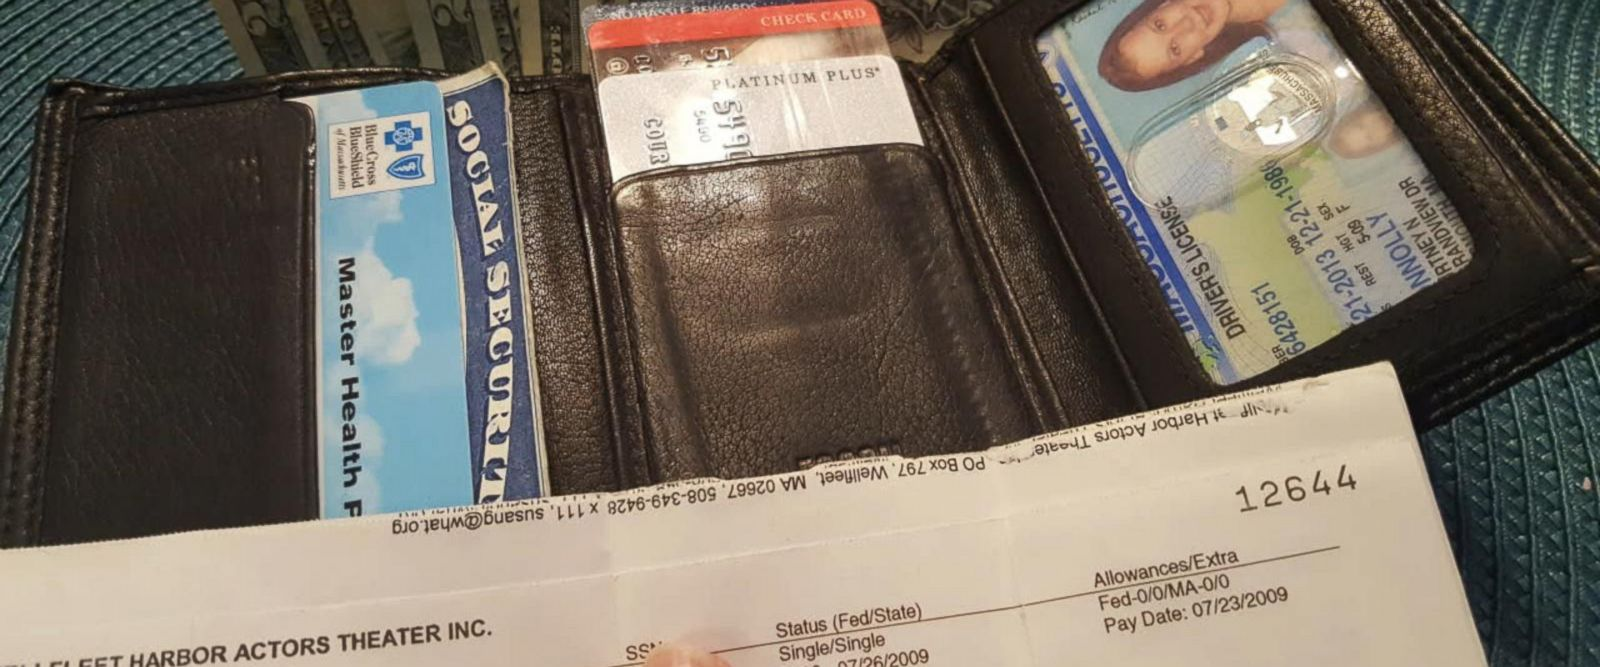 VIDEO: Woman's wallet returned 8 years later